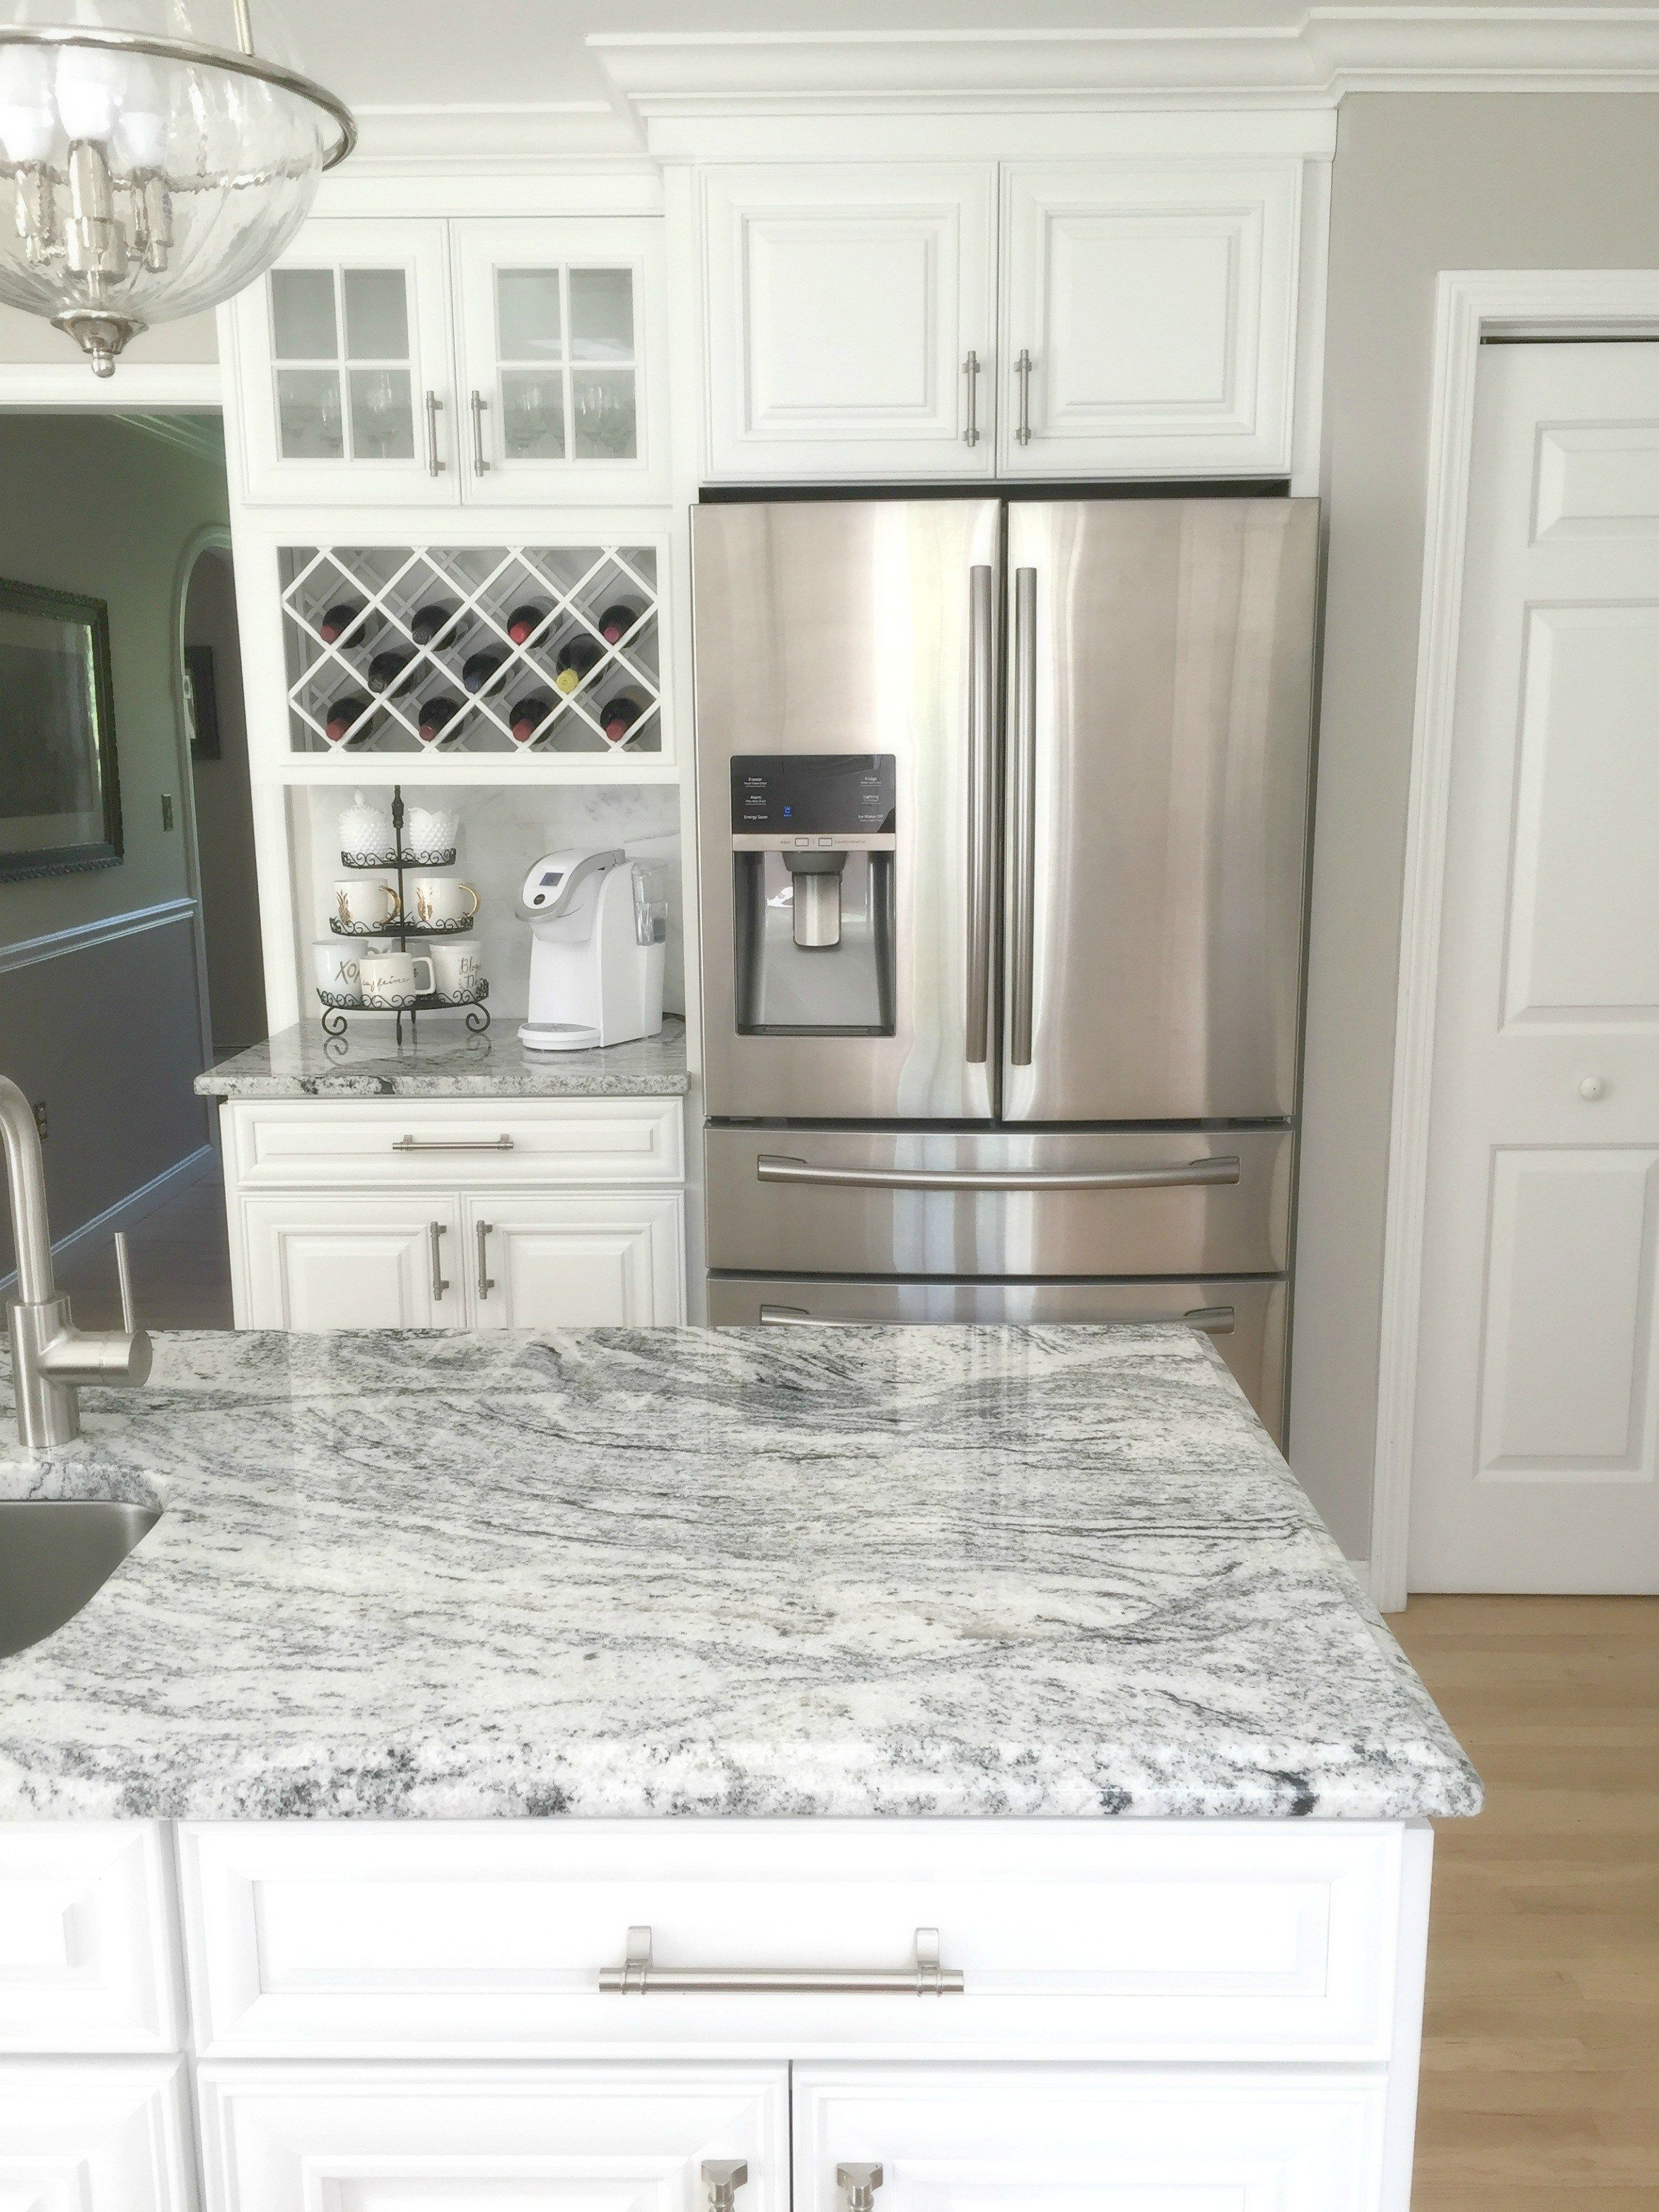 Transitional Kitchens Must Haves Viscon White Granite Countertops